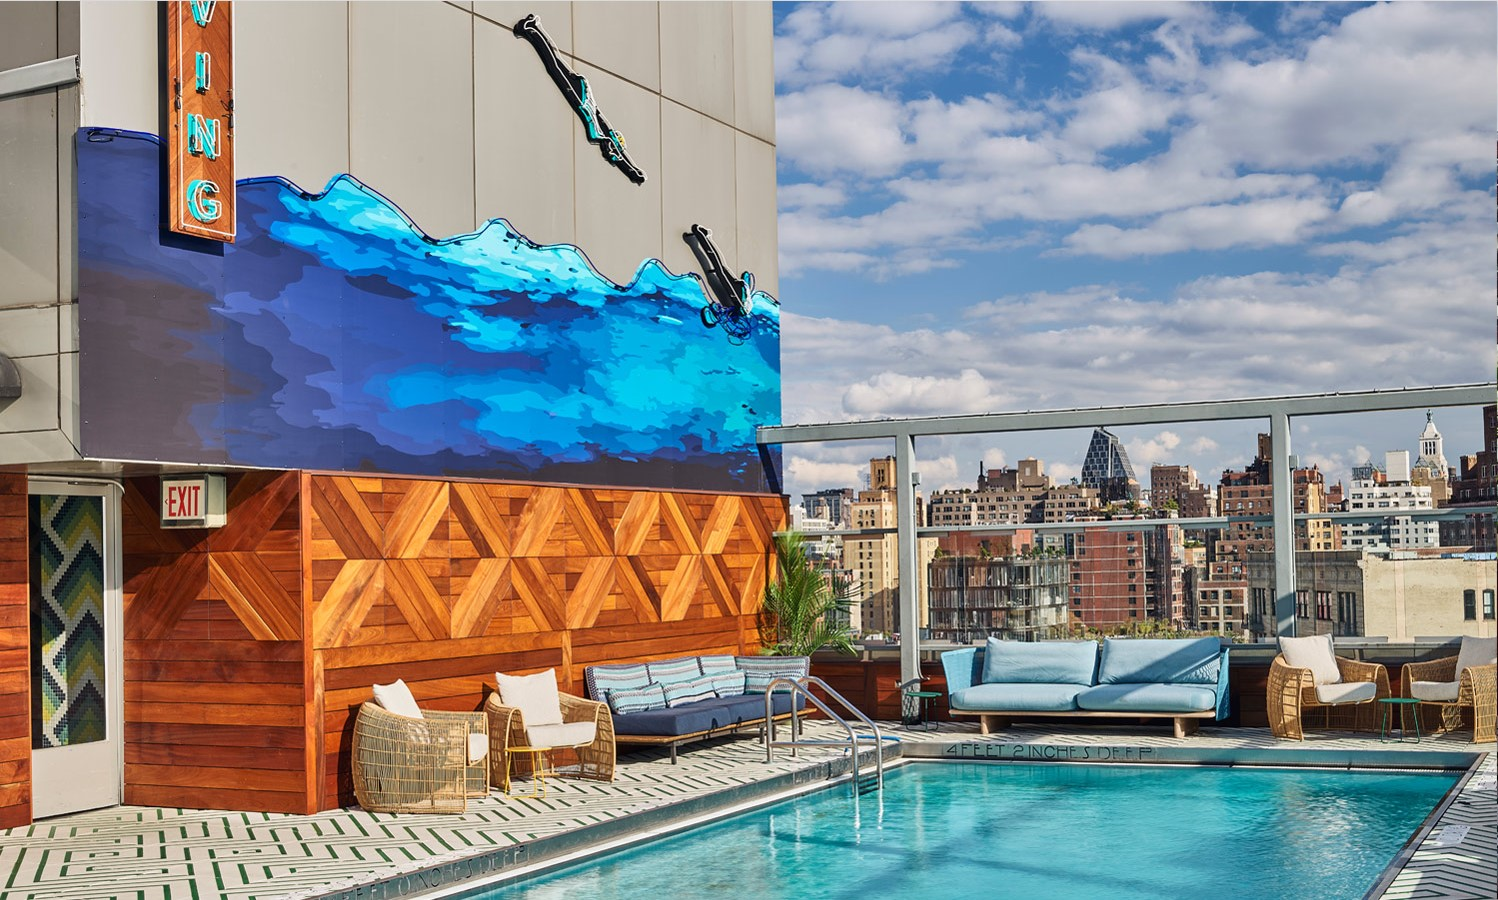 Wall mural on the side of hotel overlooking a swimming pool